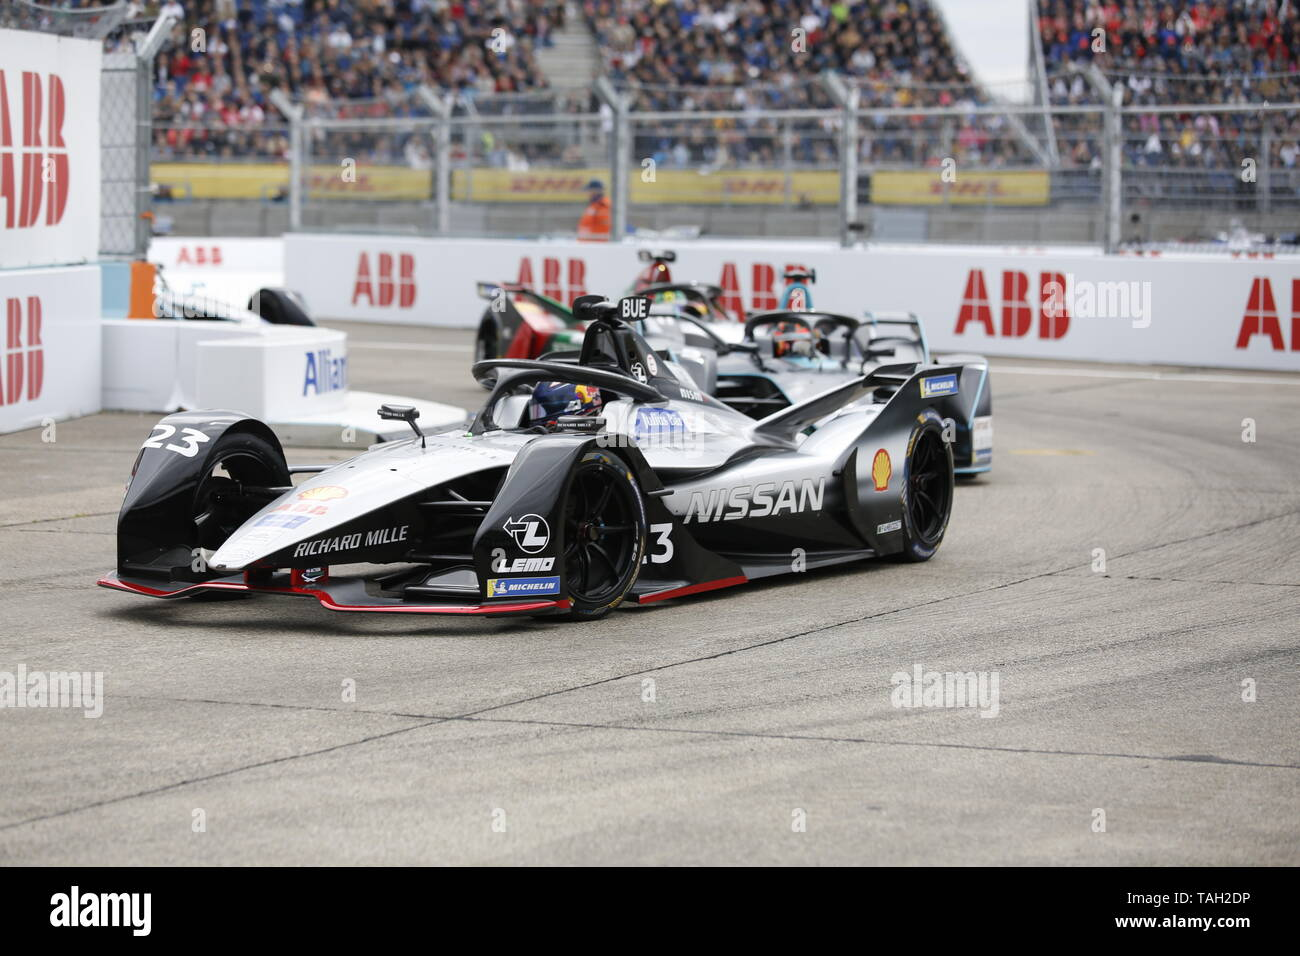 25.05.2019, Berlin, Germany.Sébastien Buemi at the race. Lucas Di Grassi from the Audi Sport Abt Schaeffler team wins the Berlin ePrix. Sébastien Buemi from the team Nissan e.dams wins the second place and Jean-Eric Vergne from the team DS TECHEETAH wins the third place. The Formula E will be on the 25th of May 2019 for the fifth time in Berlin. The electric racing series 2018/2018 will take place at the former Tempelhof Airport. - Stock Image